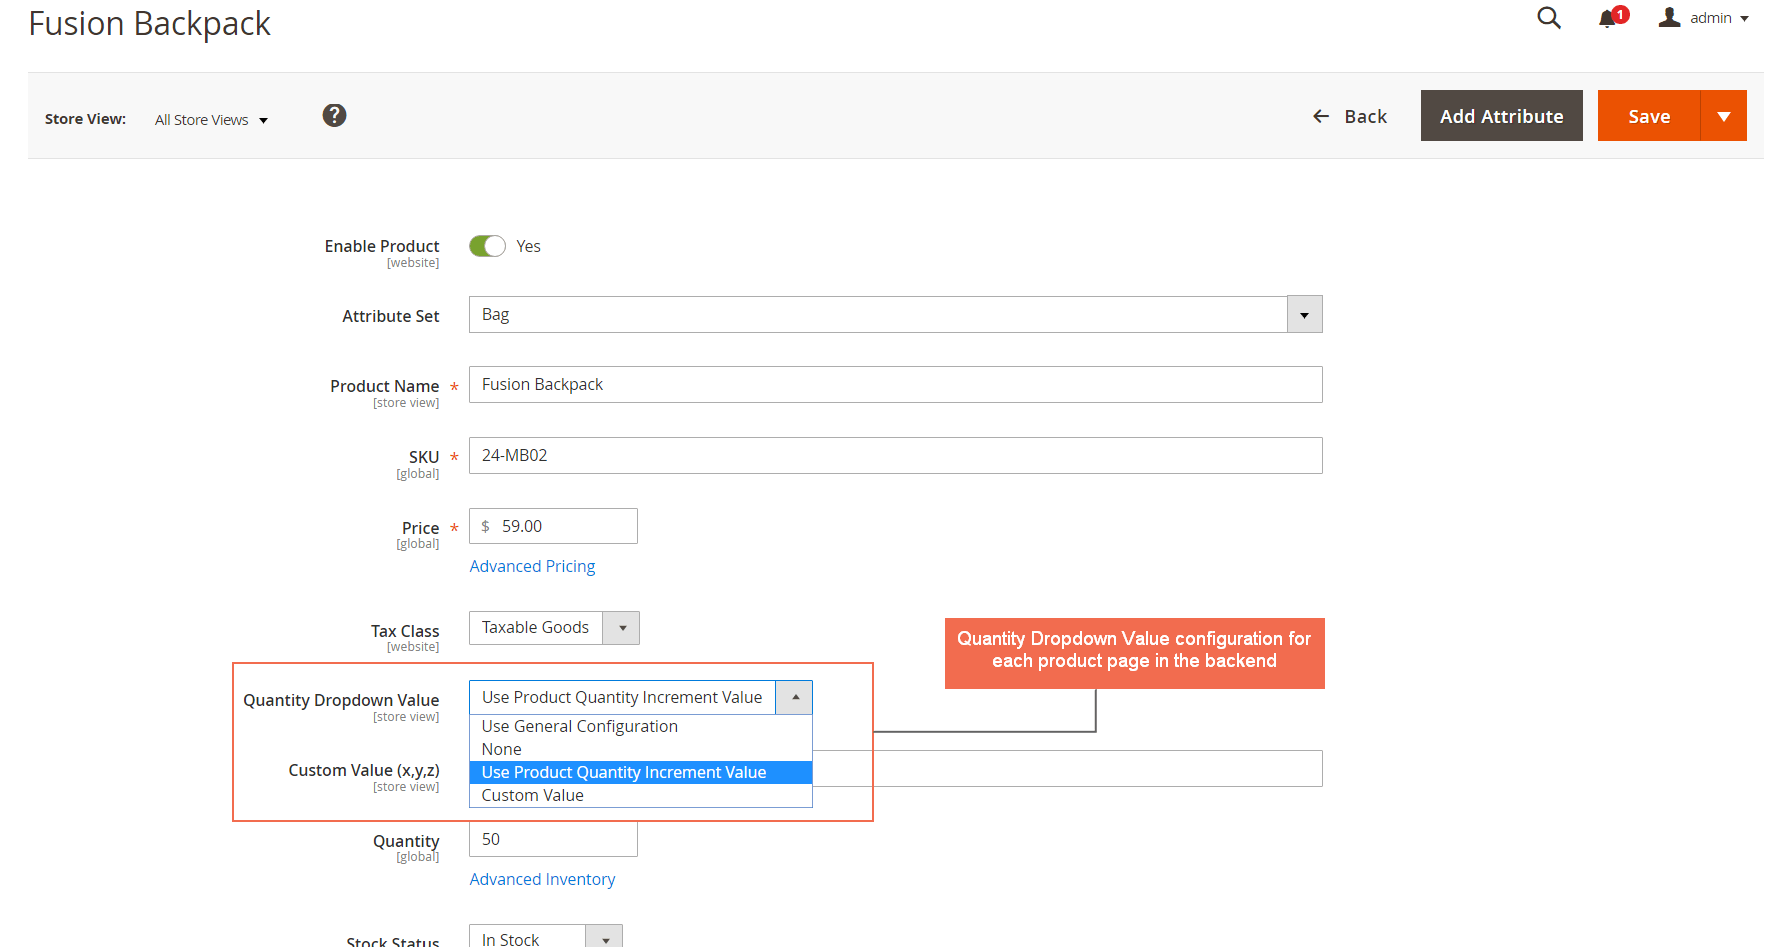 Quantity Dropdown Value configuration for each product page in the backend